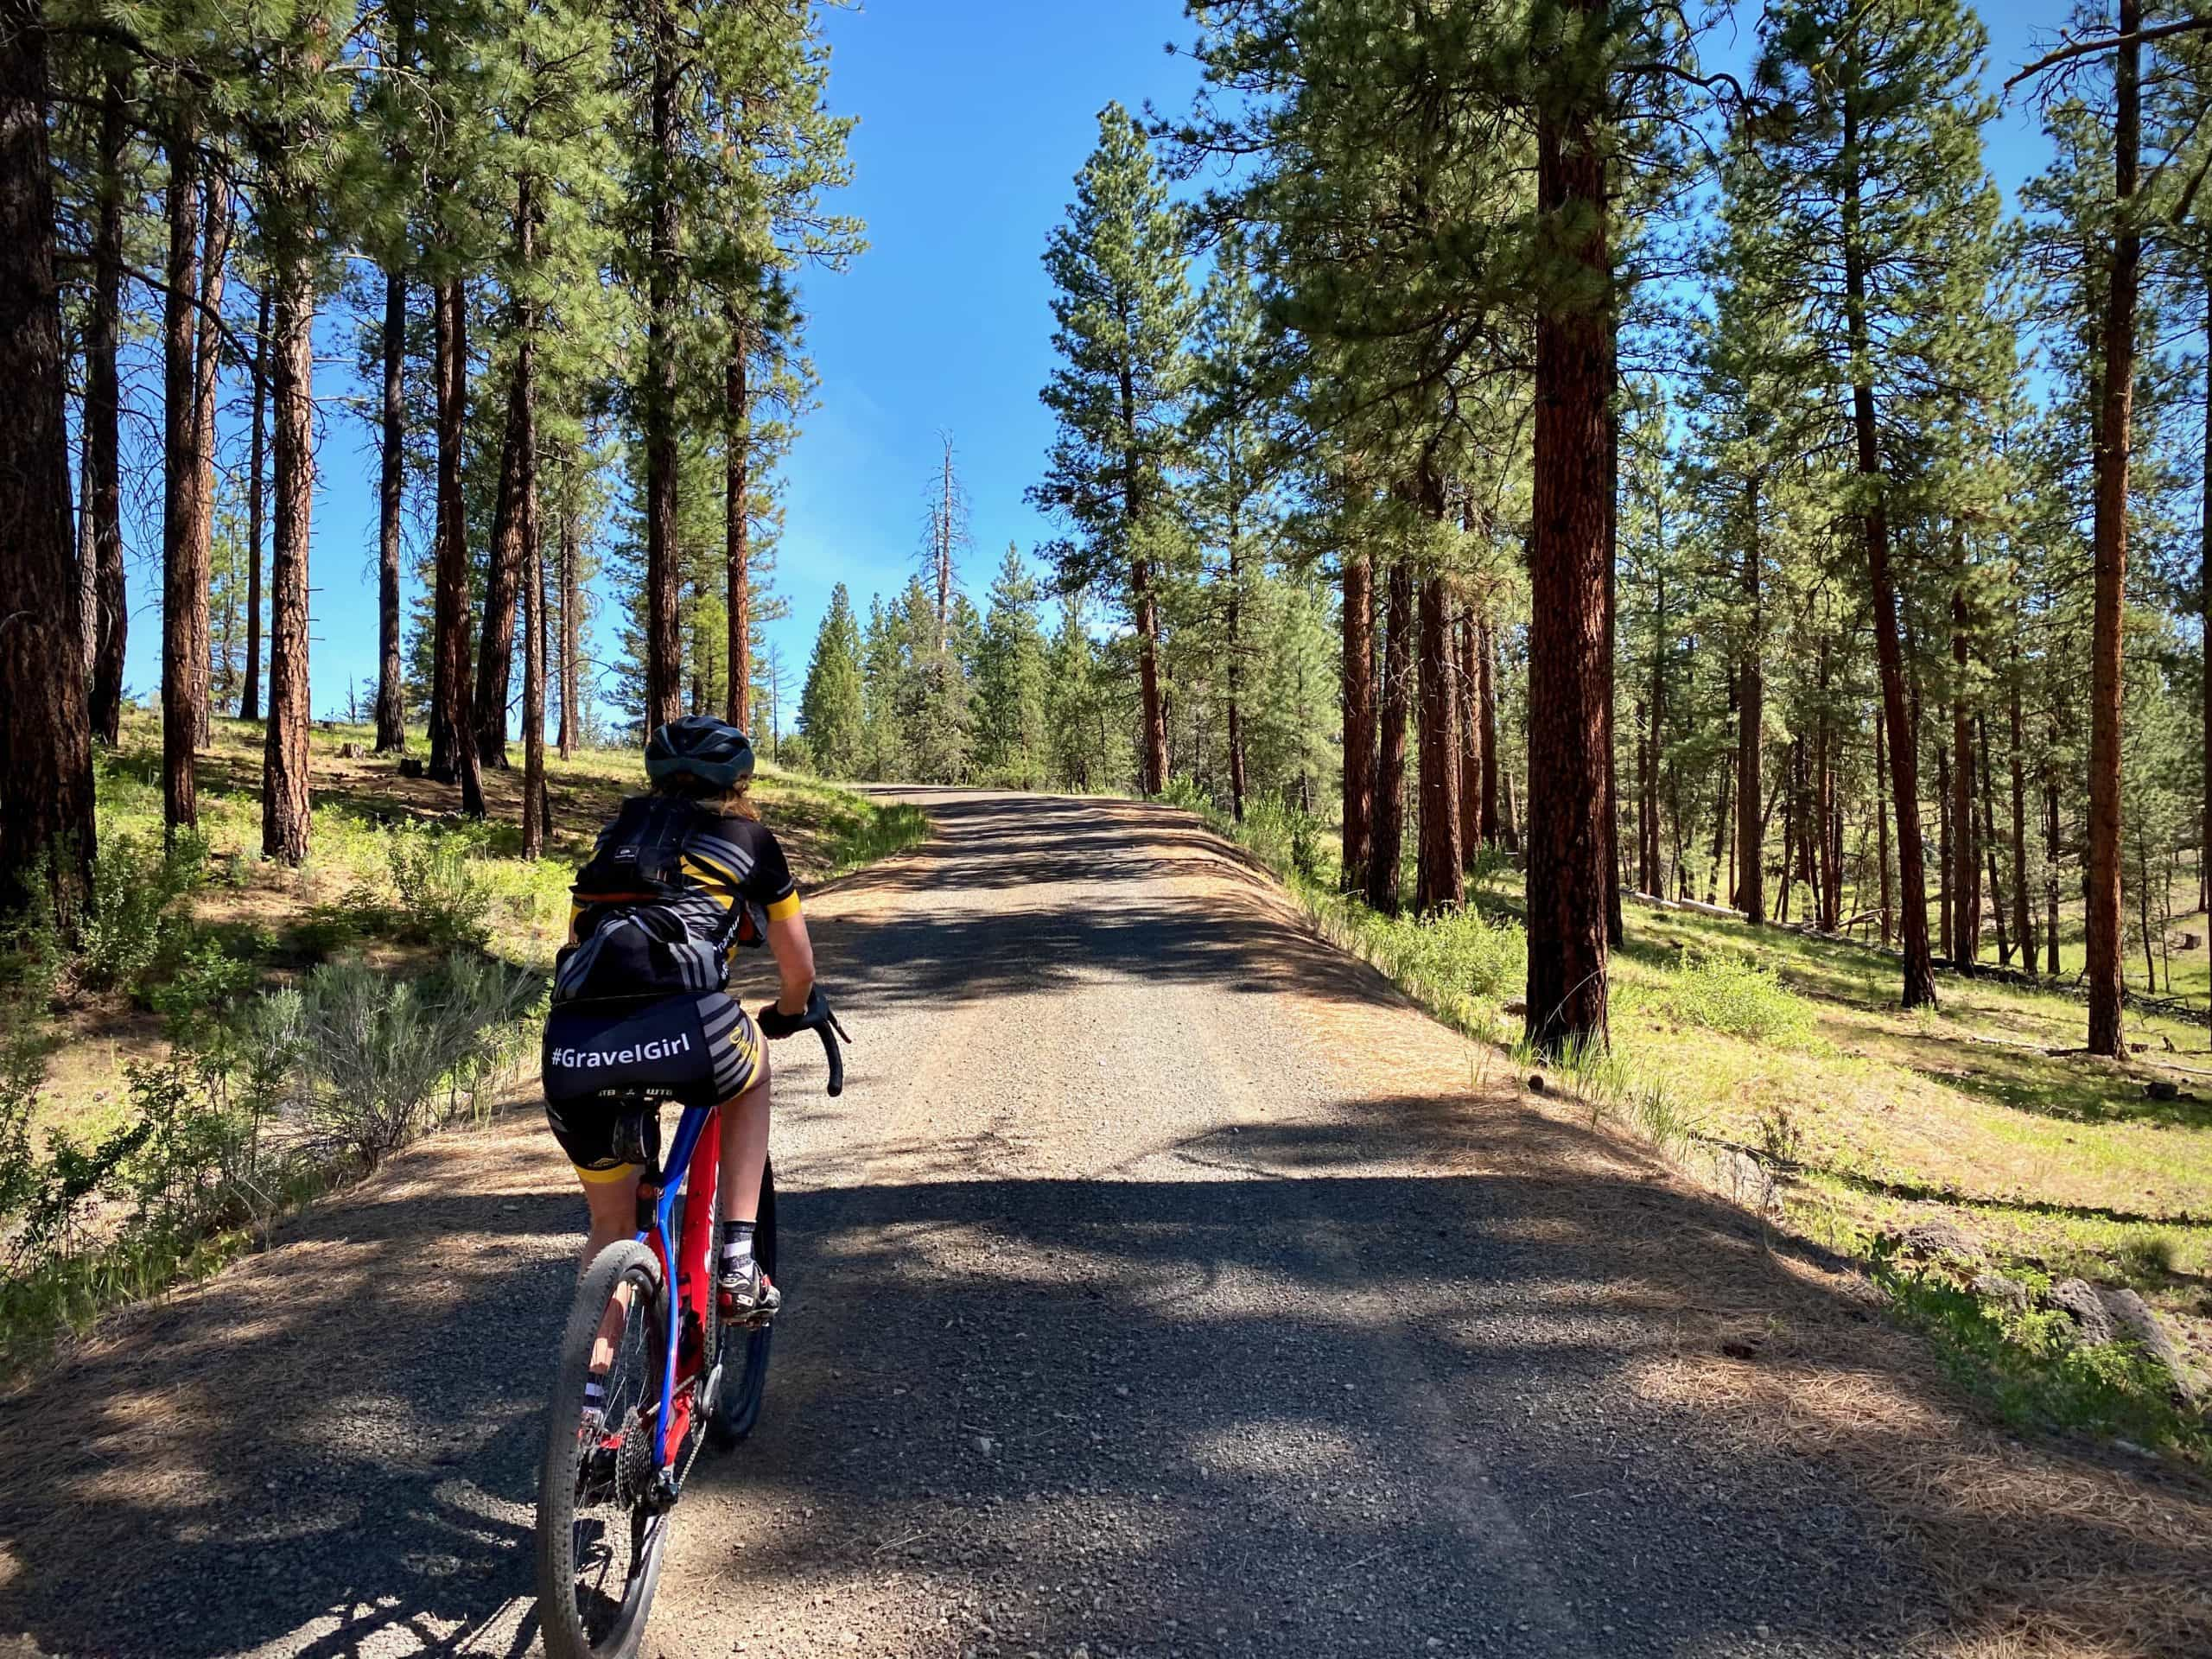 Woman gravel cyclist going uphill in Ponderosa forest in Central Oregon.